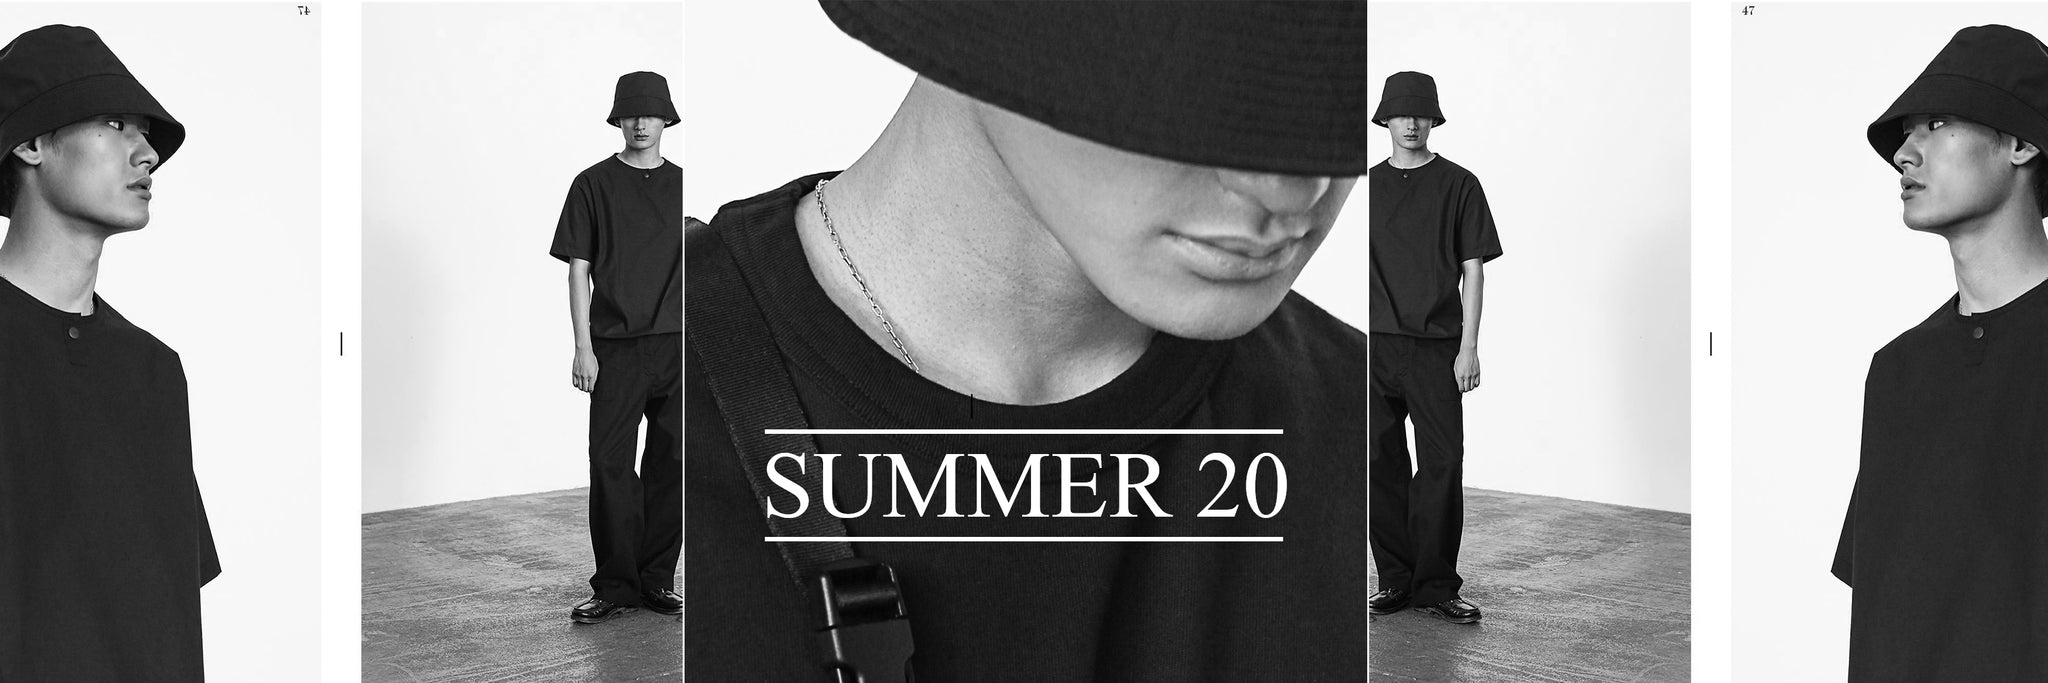 Summer 20 Preview